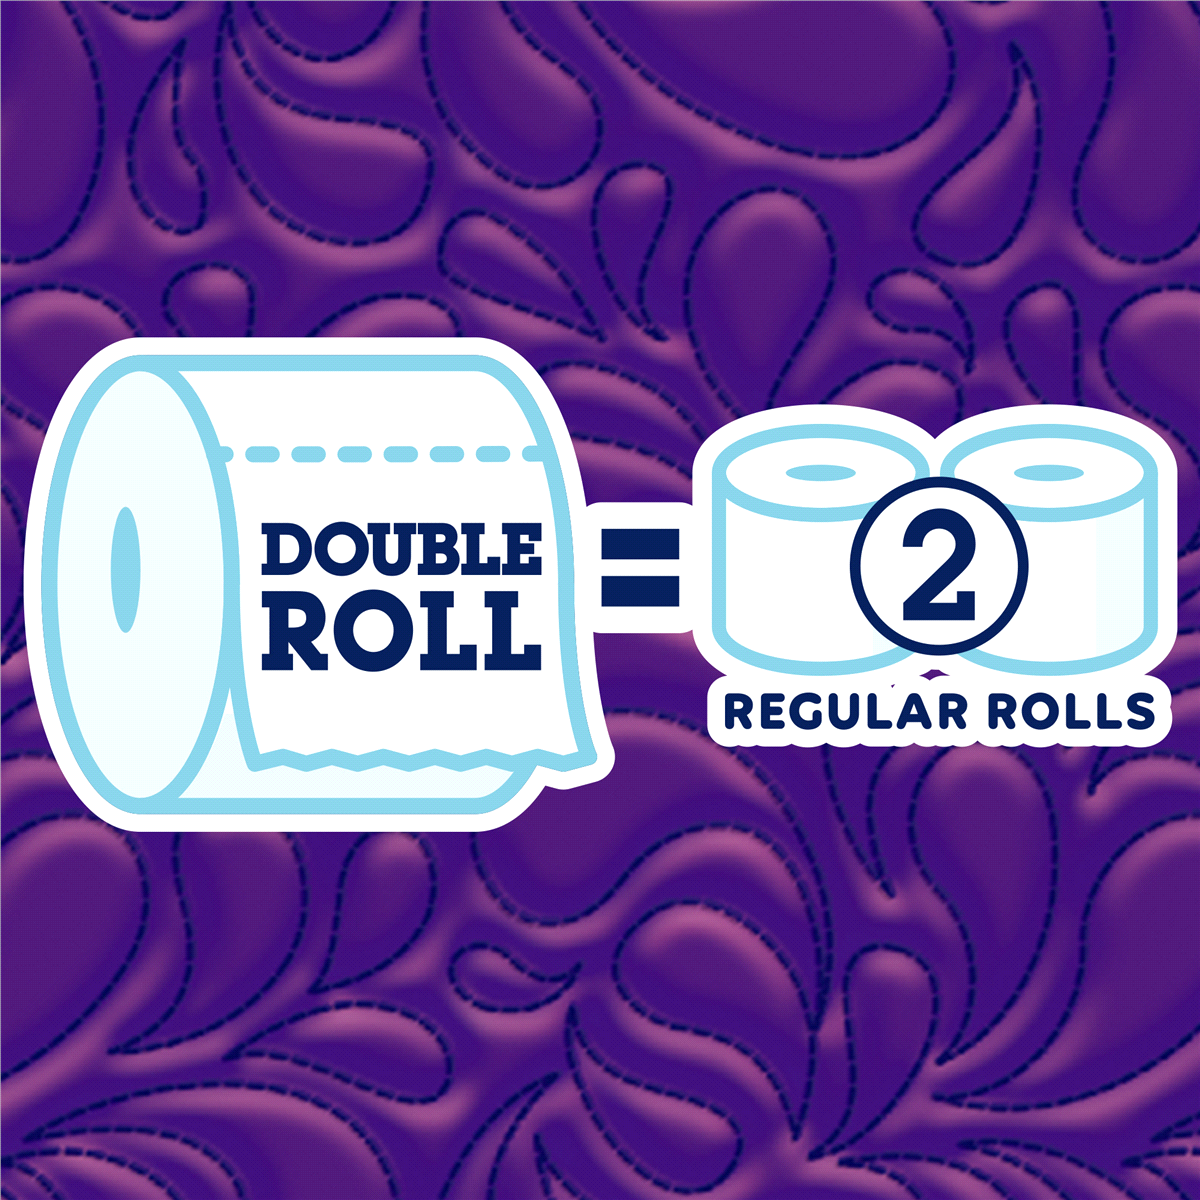 slide 6 of 6, Quilted Northern Ultra Plush Toilet Paper 6 Double Rolls,